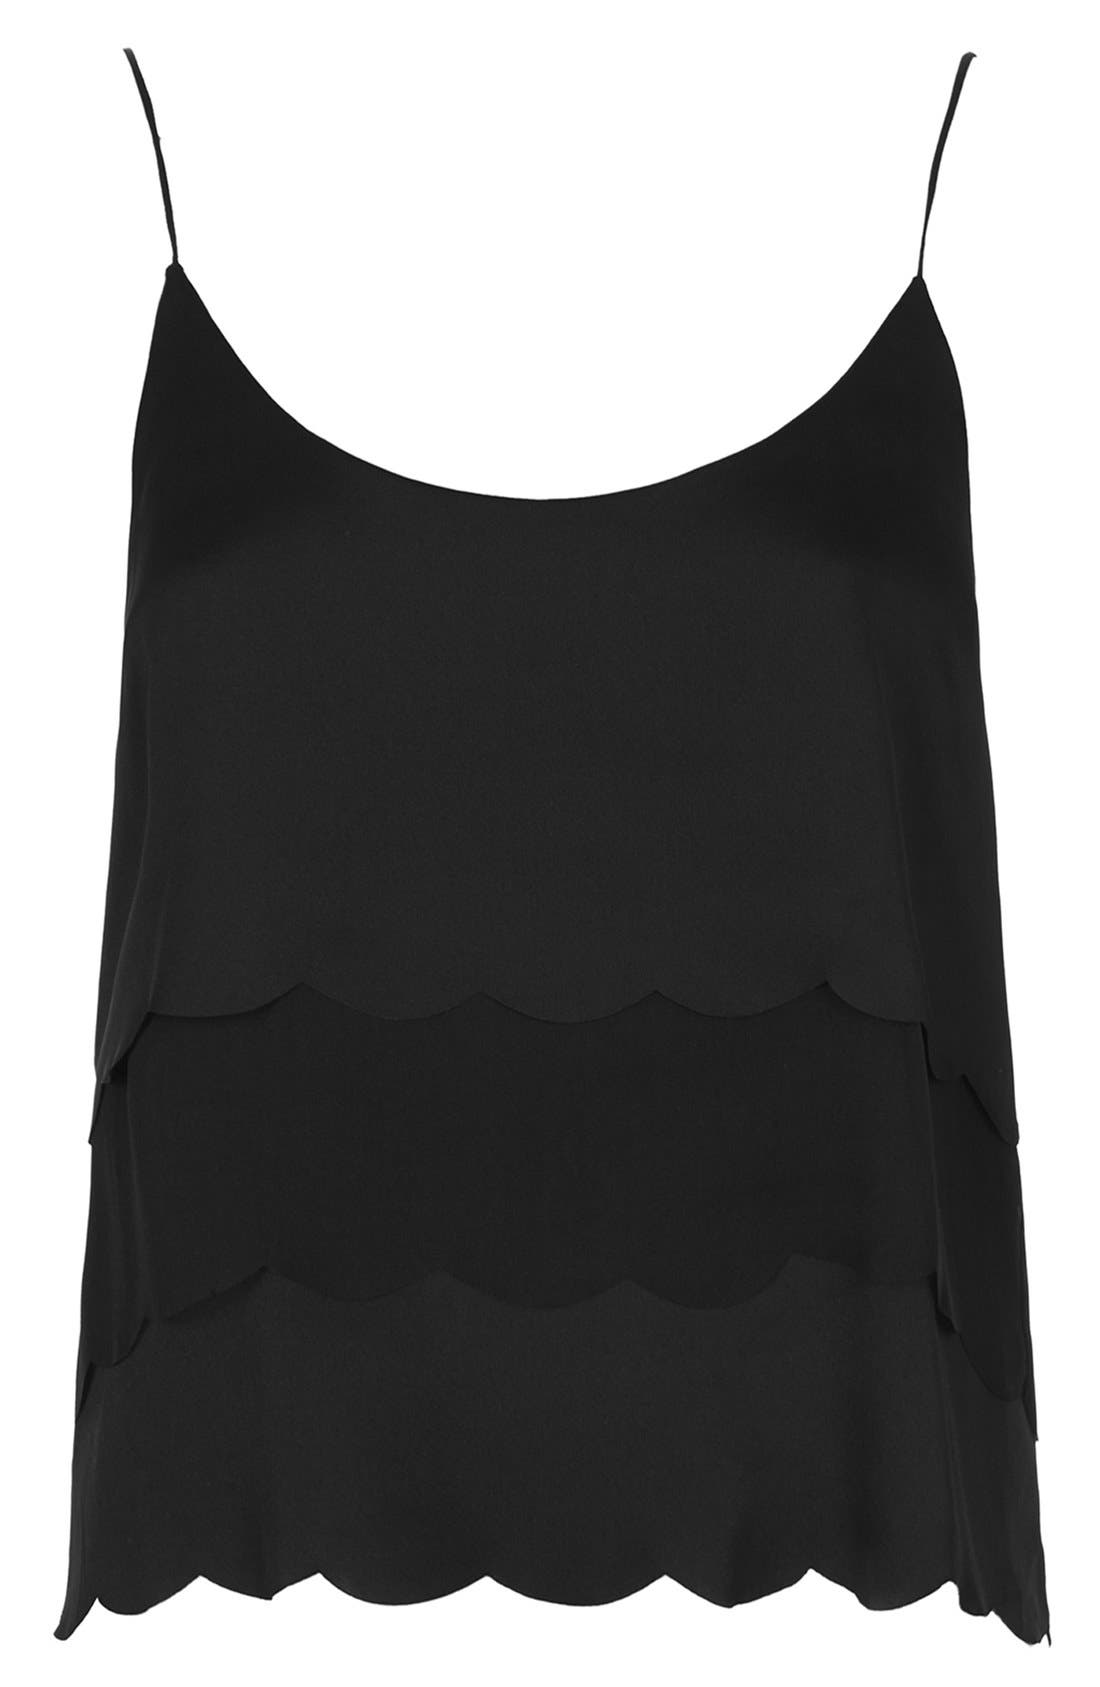 Alternate Image 3  - Kate Moss for Topshop Scalloped Camisole (Online Only)